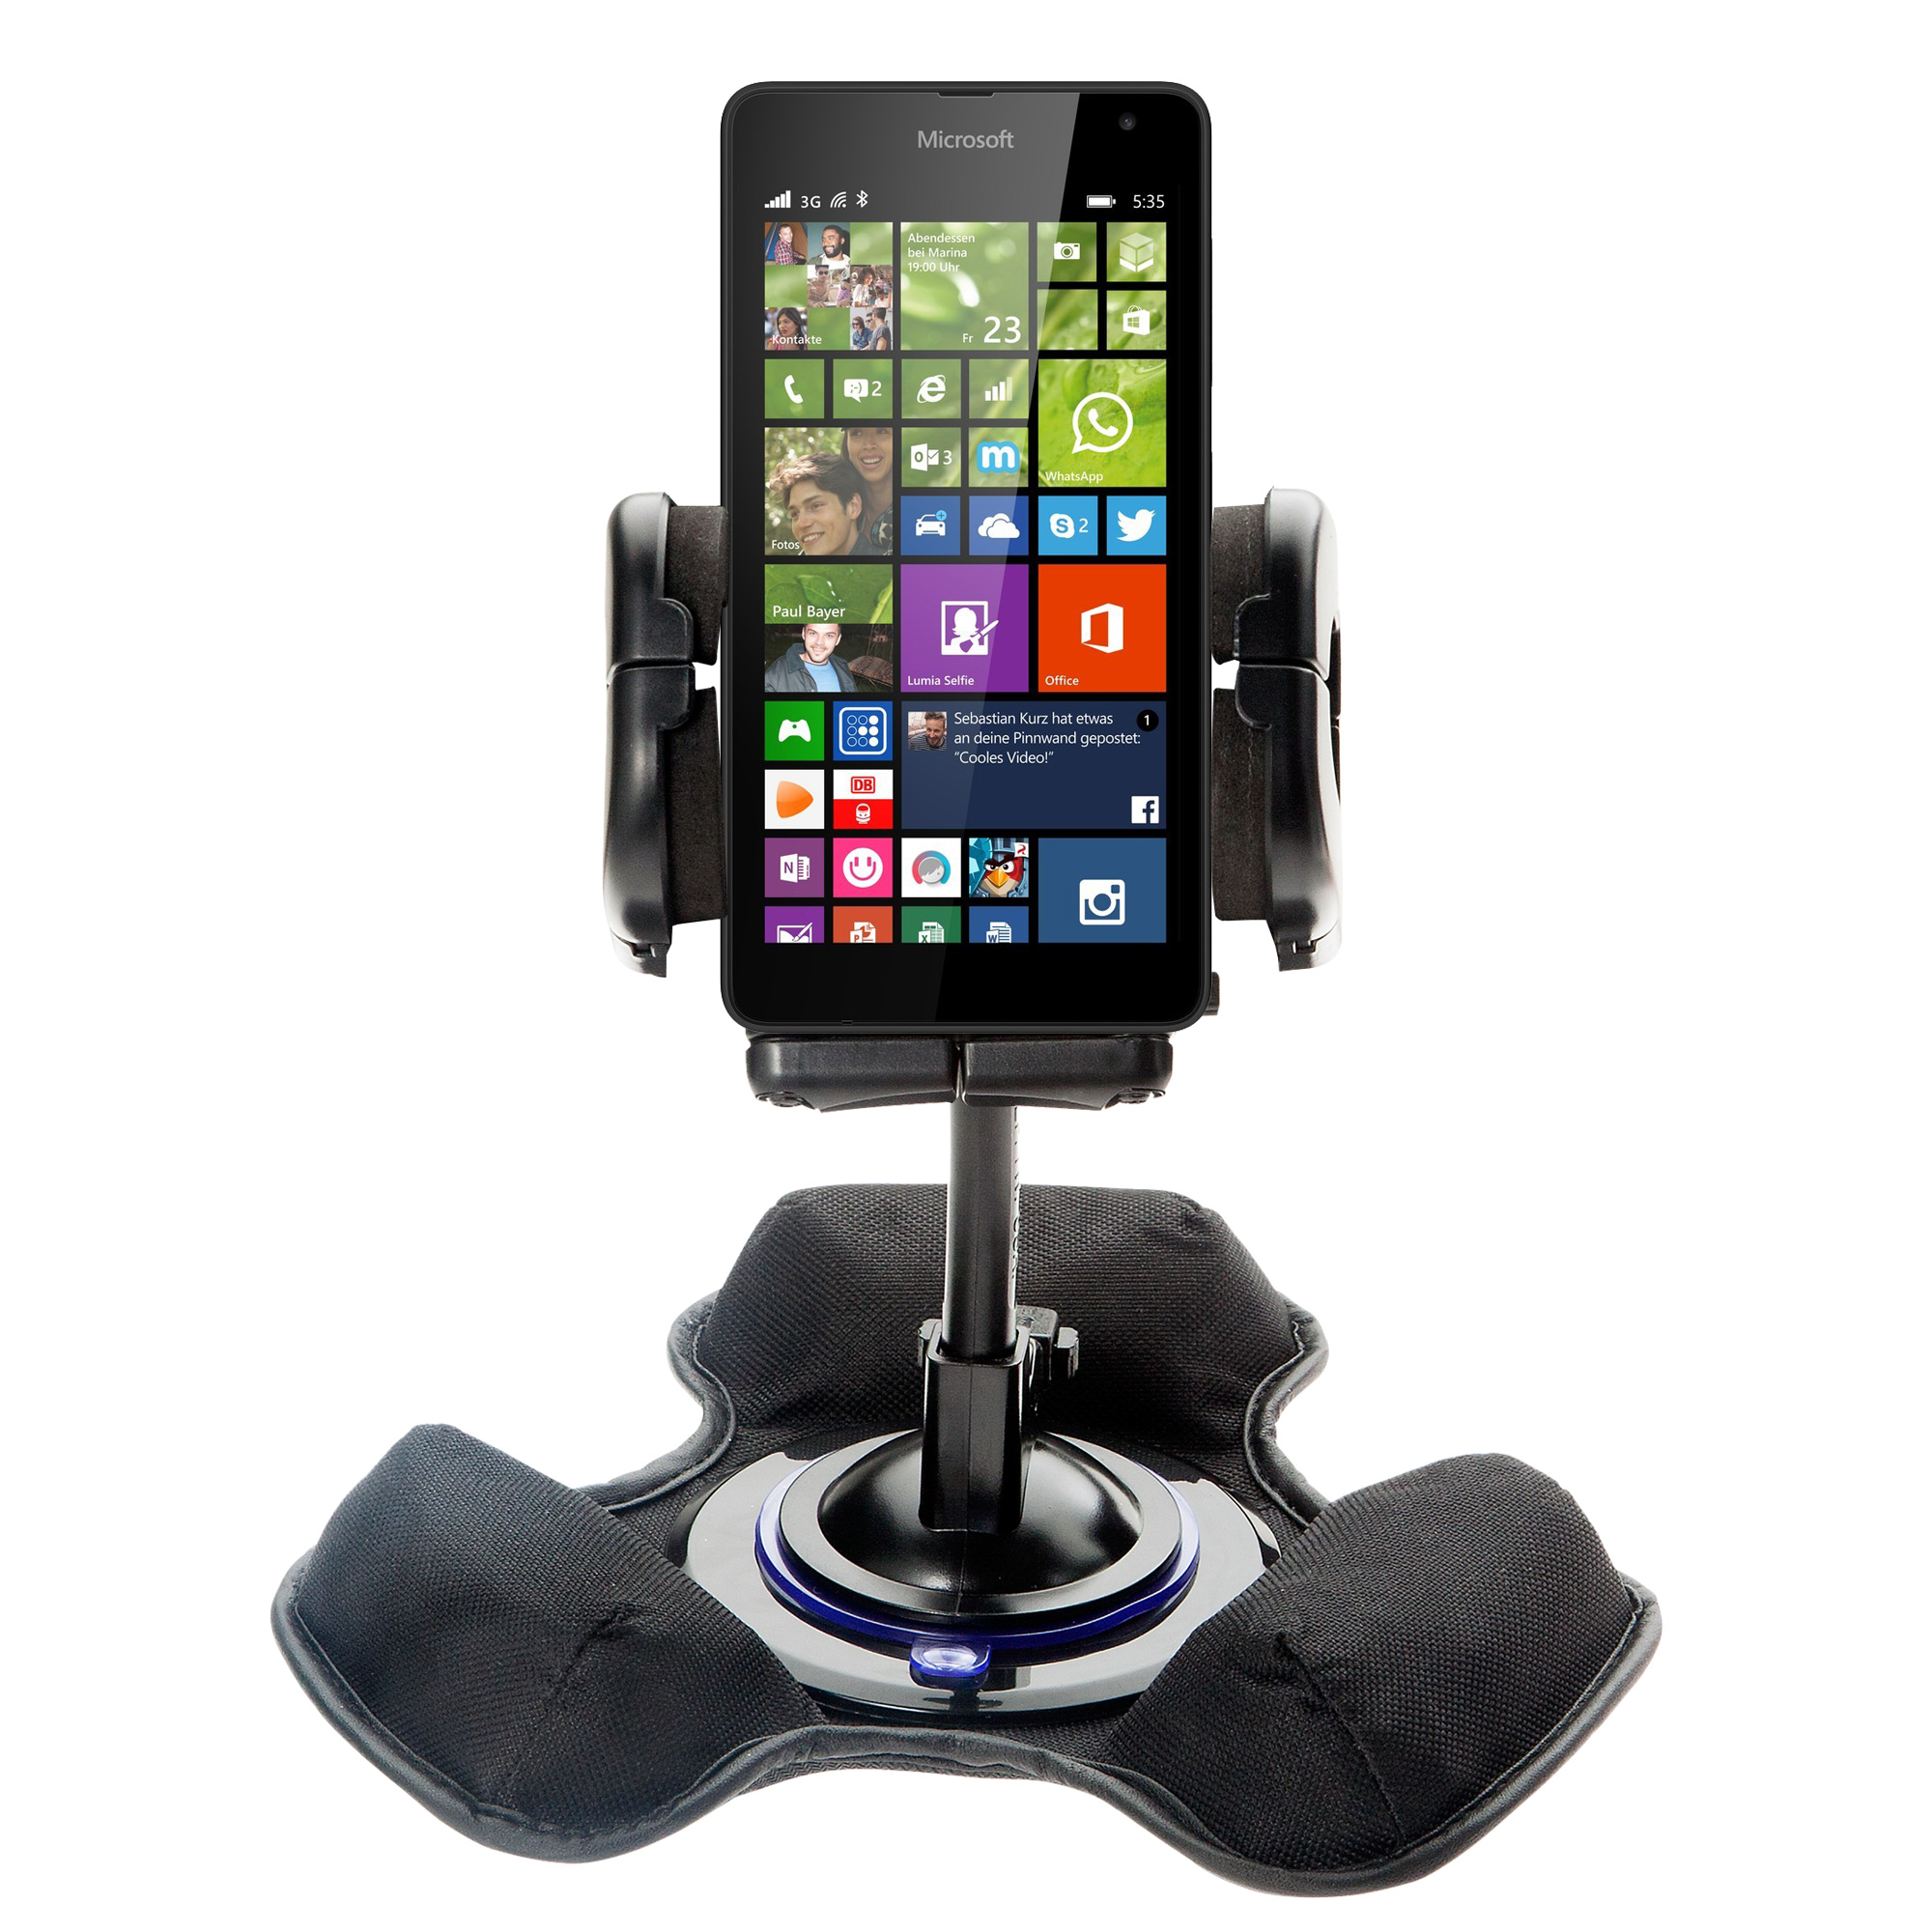 Dash and Windshield Holder compatible with the Microsoft Lumia 535